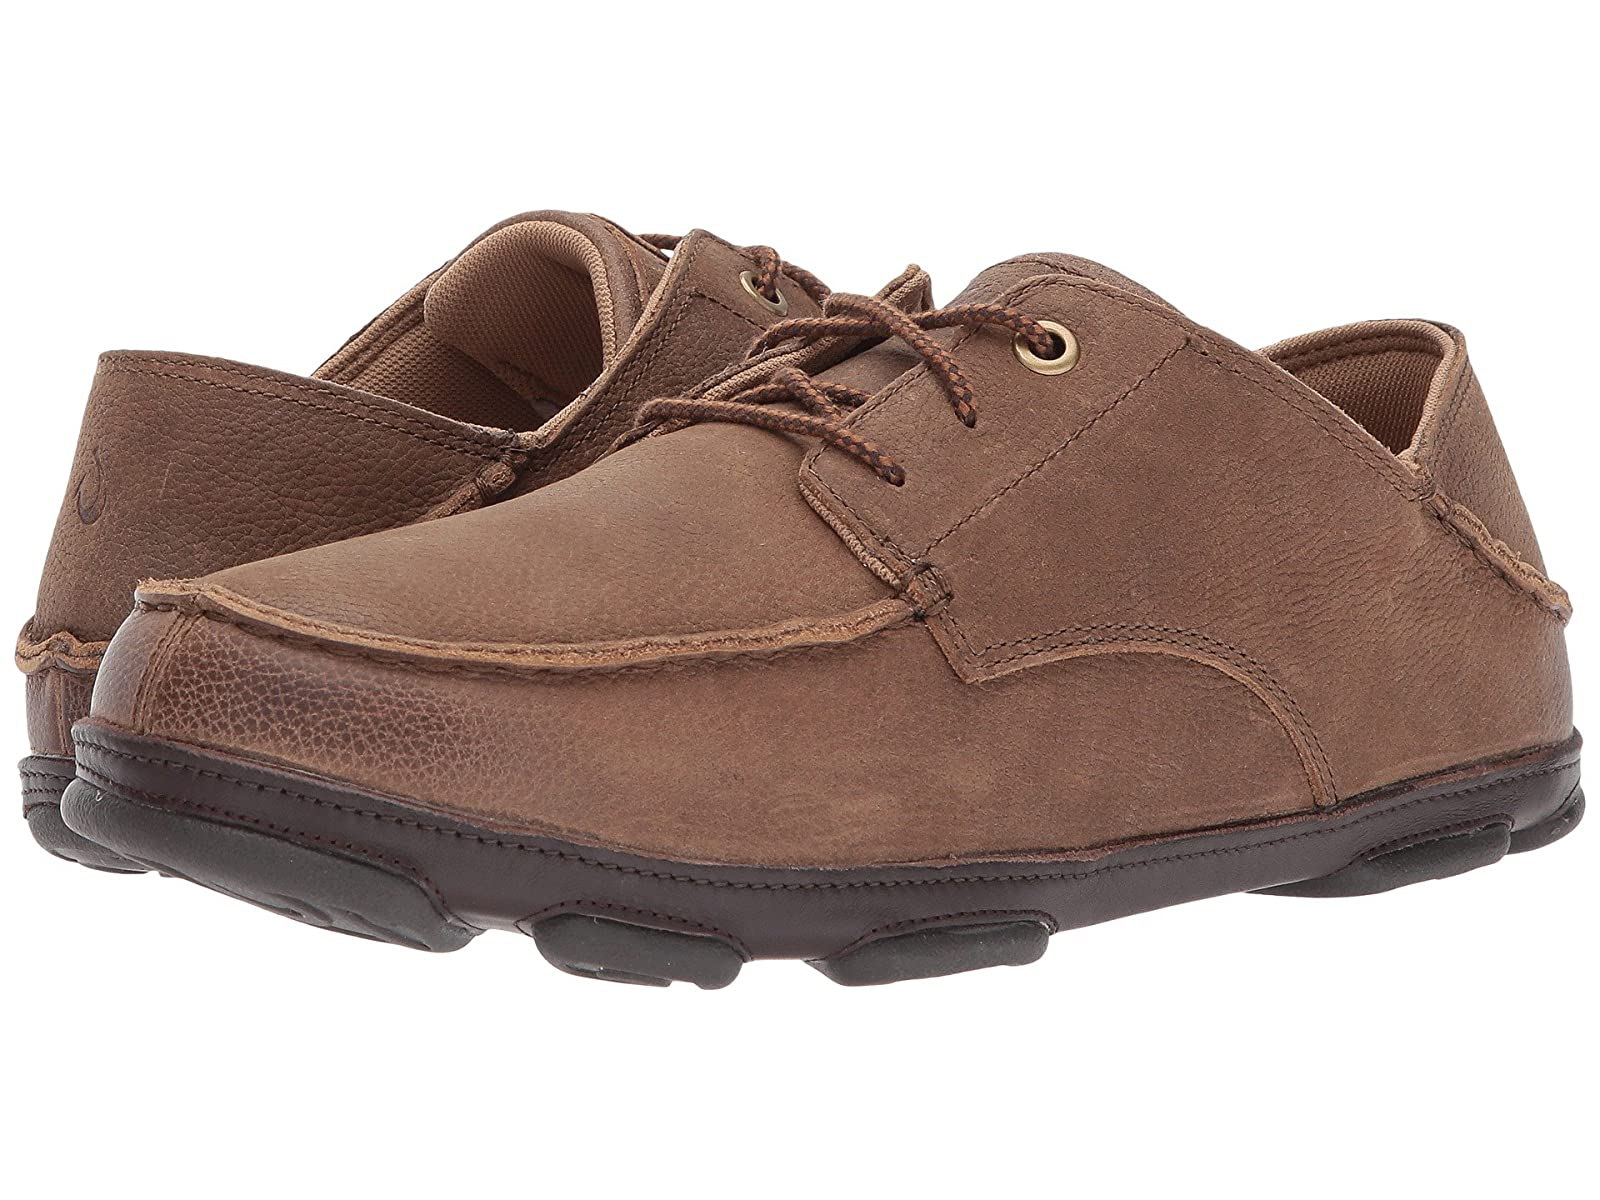 OluKai Hamakua PokoAtmospheric grades have affordable shoes